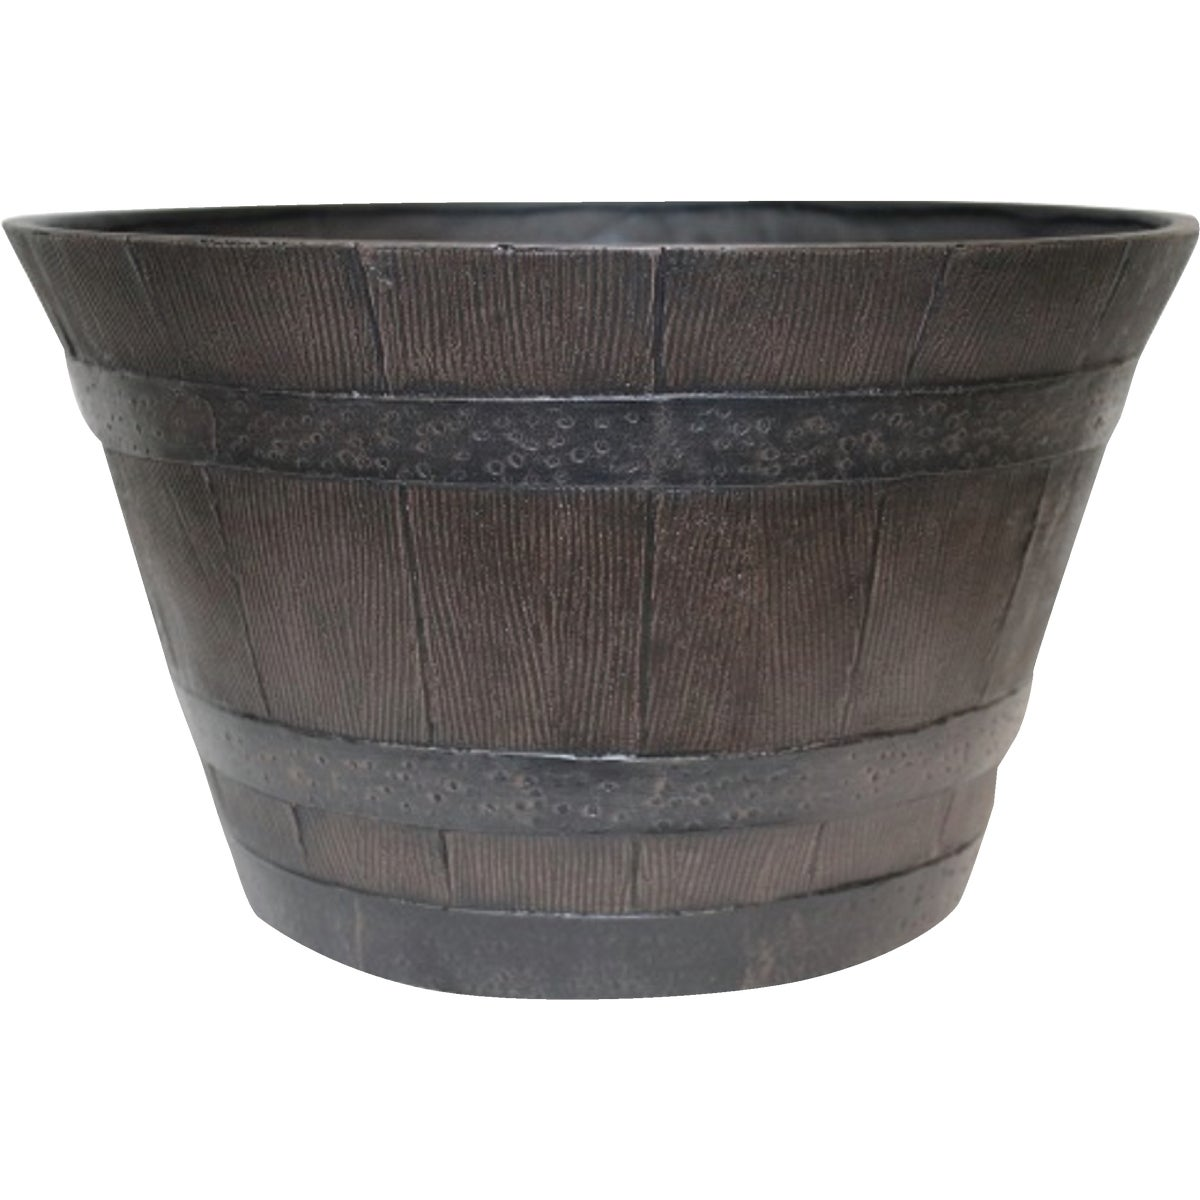 "21"" WINE BARREL PLANTER - PBB2104OS by Southern Patio"